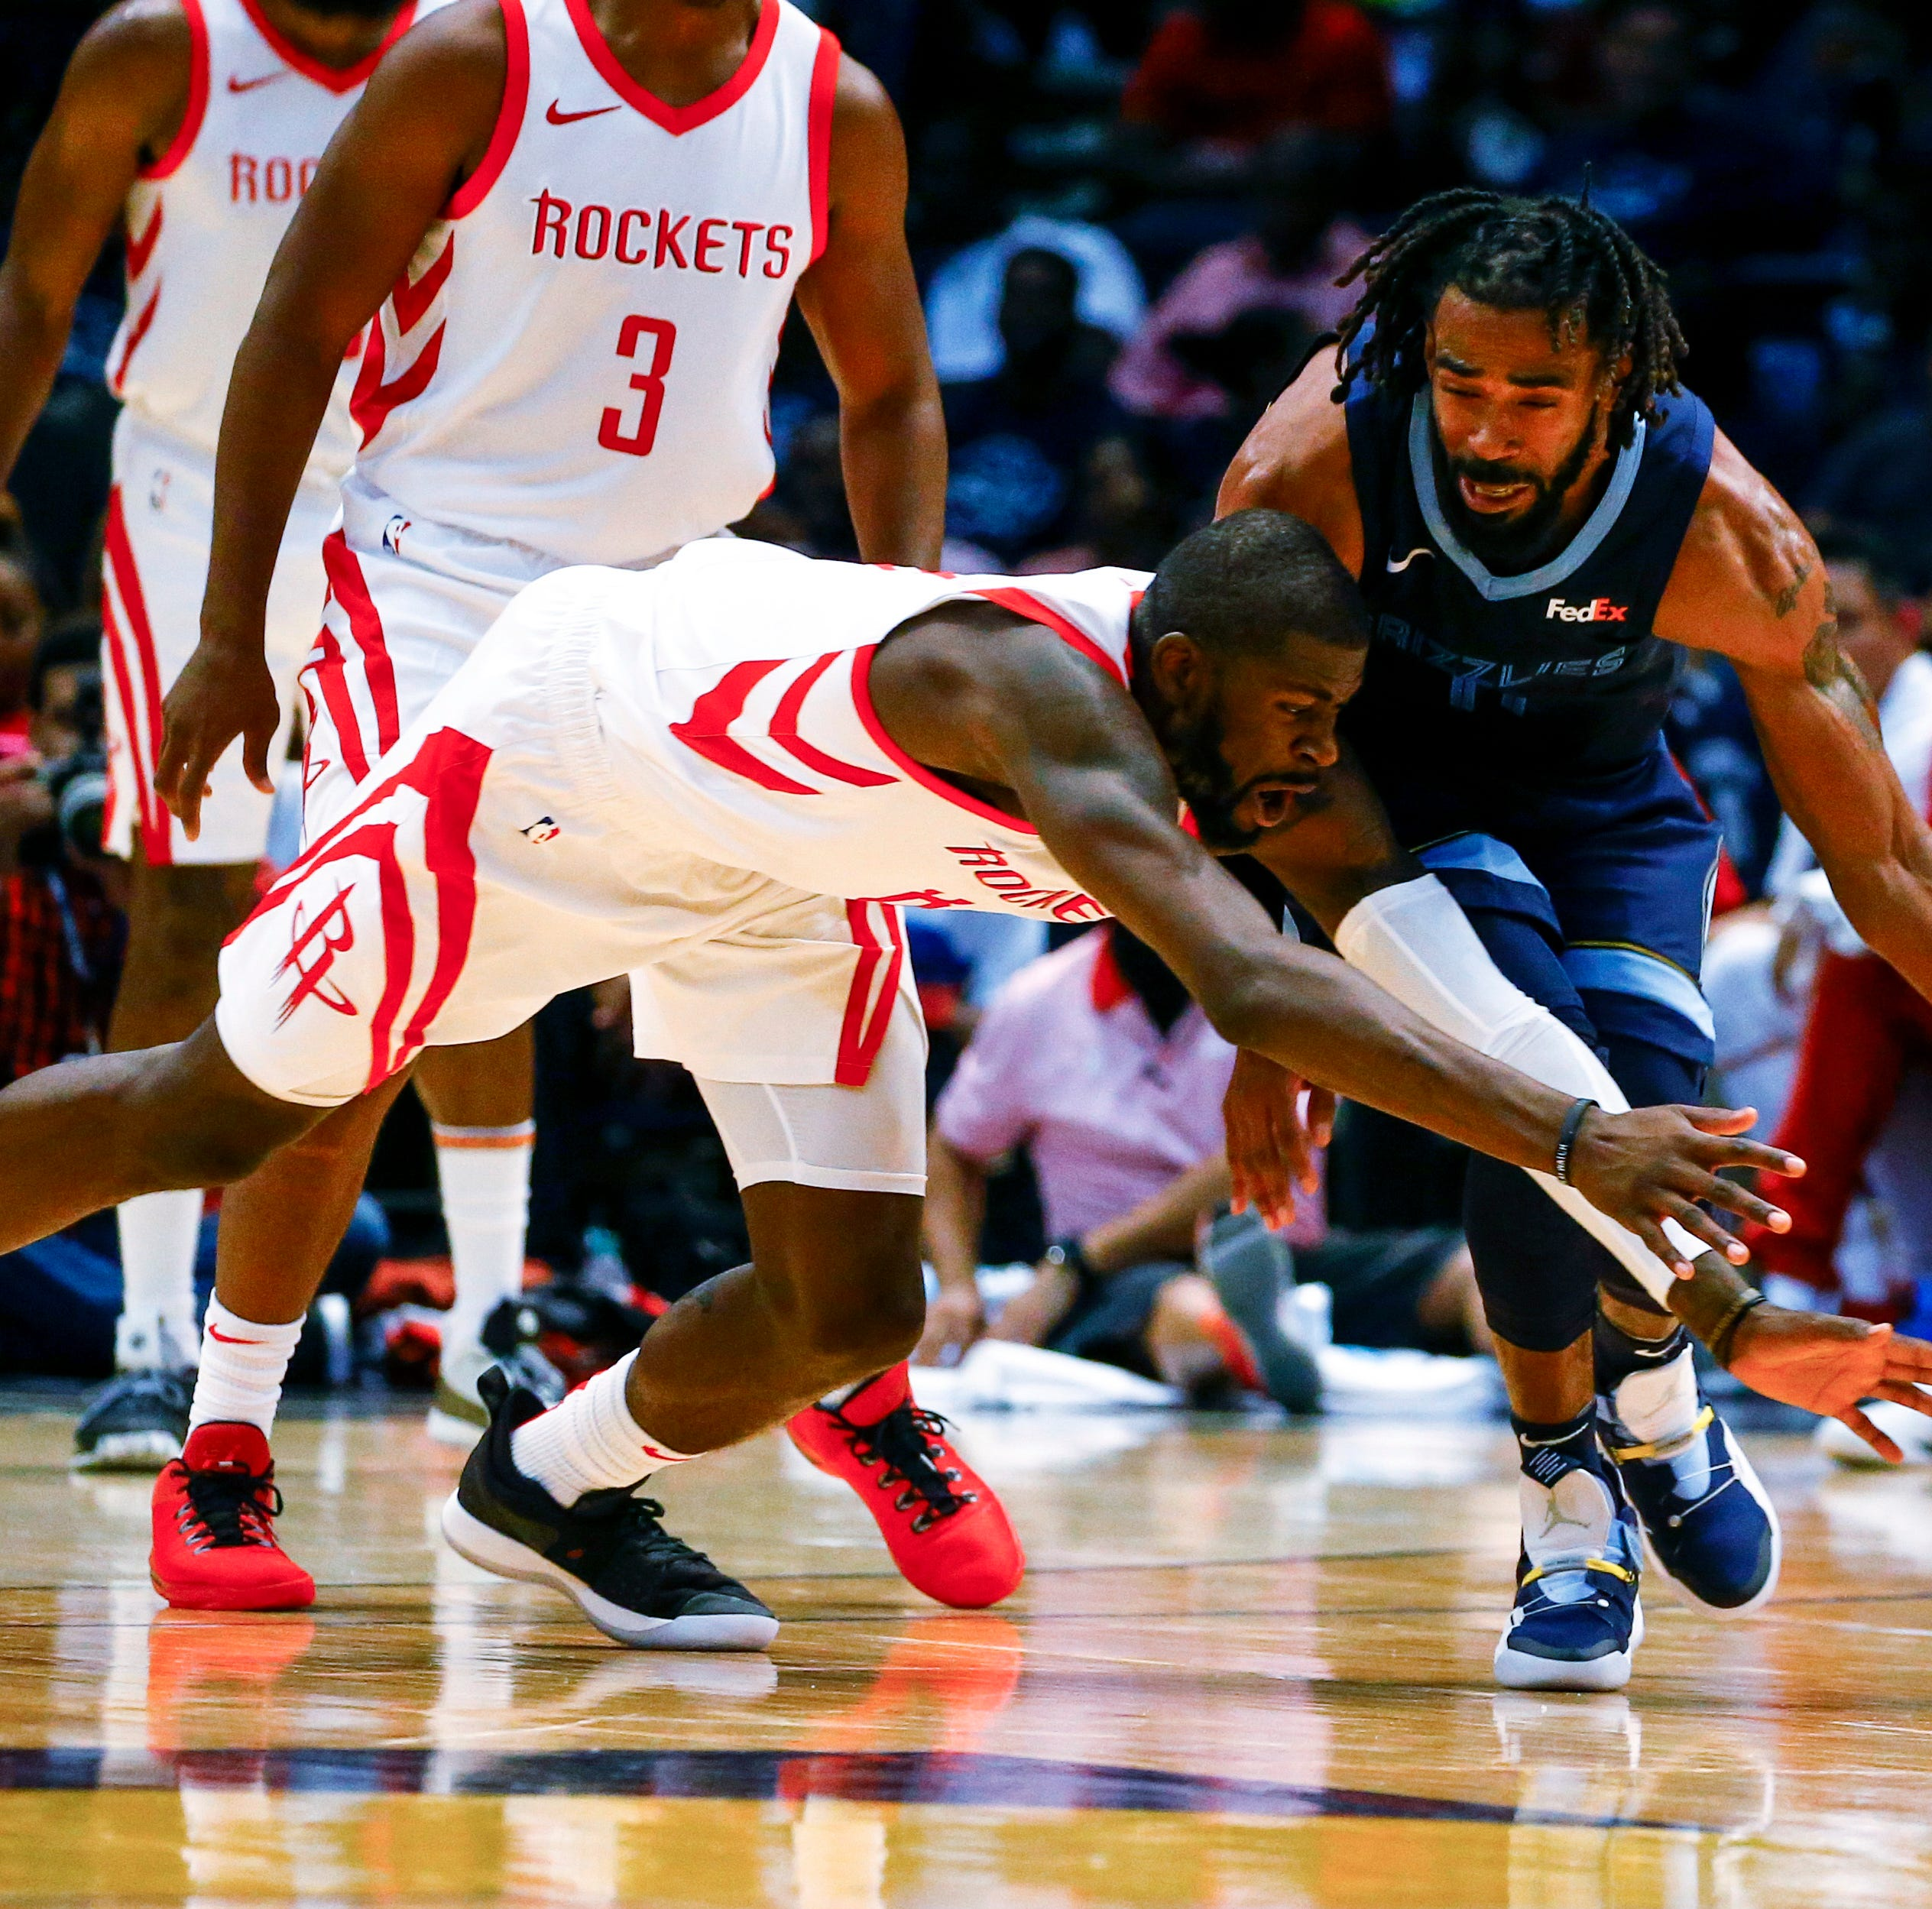 Former Ventura High and Ventura College star James Ennis tries to steal the ball from Grizzlies guard Mike Conley during a Rockets preseason game.